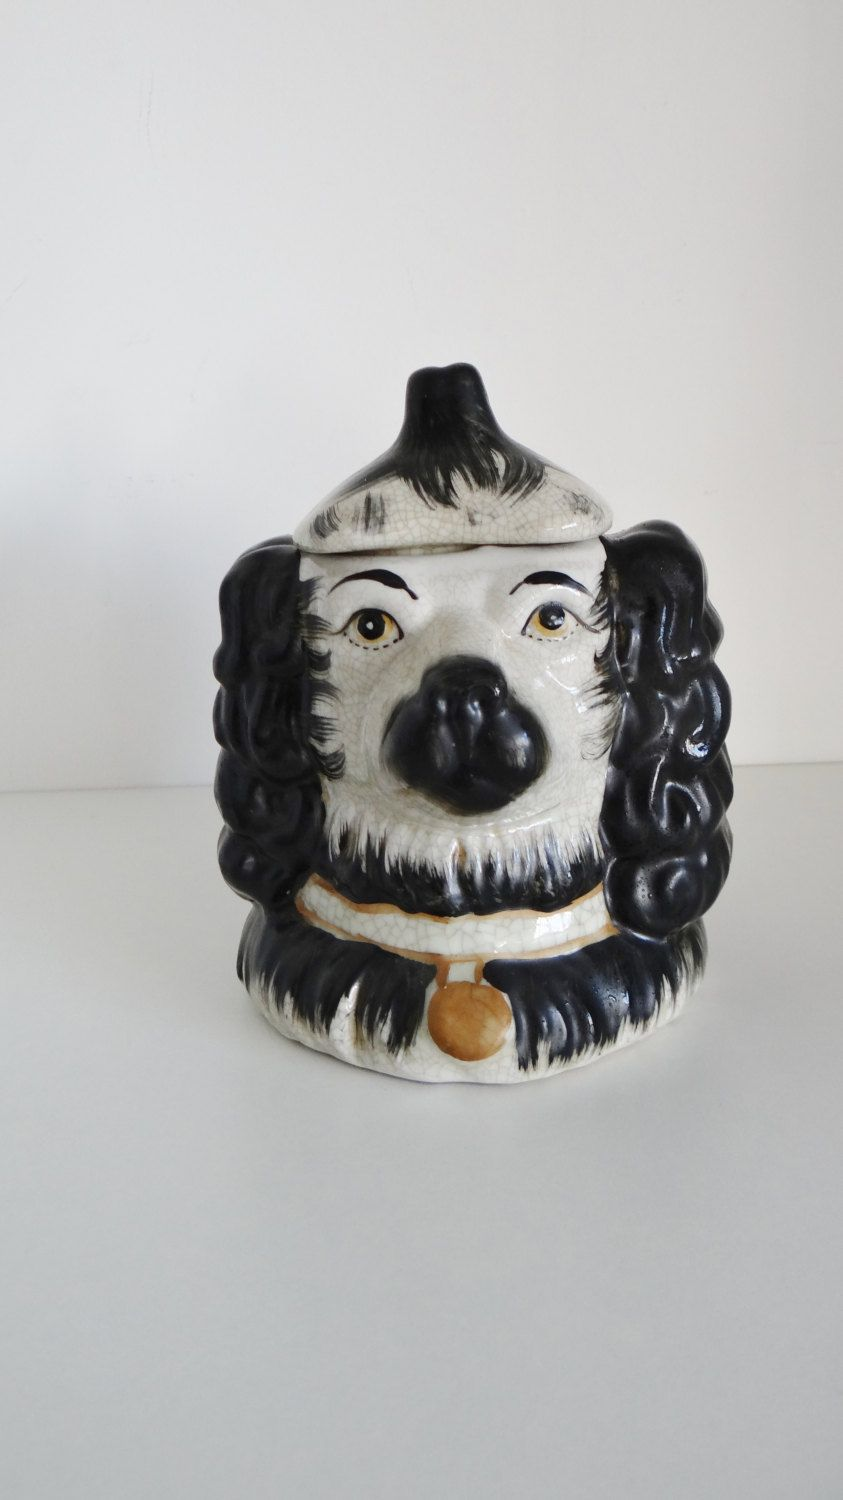 Vintage Staffordshire Style King Charles Spaniel Double Faced Tobacco Jar Humidor Mid Century by crabtulip on Etsy https://www.etsy.com/listing/211534034/vintage-staffordshire-style-king-charles